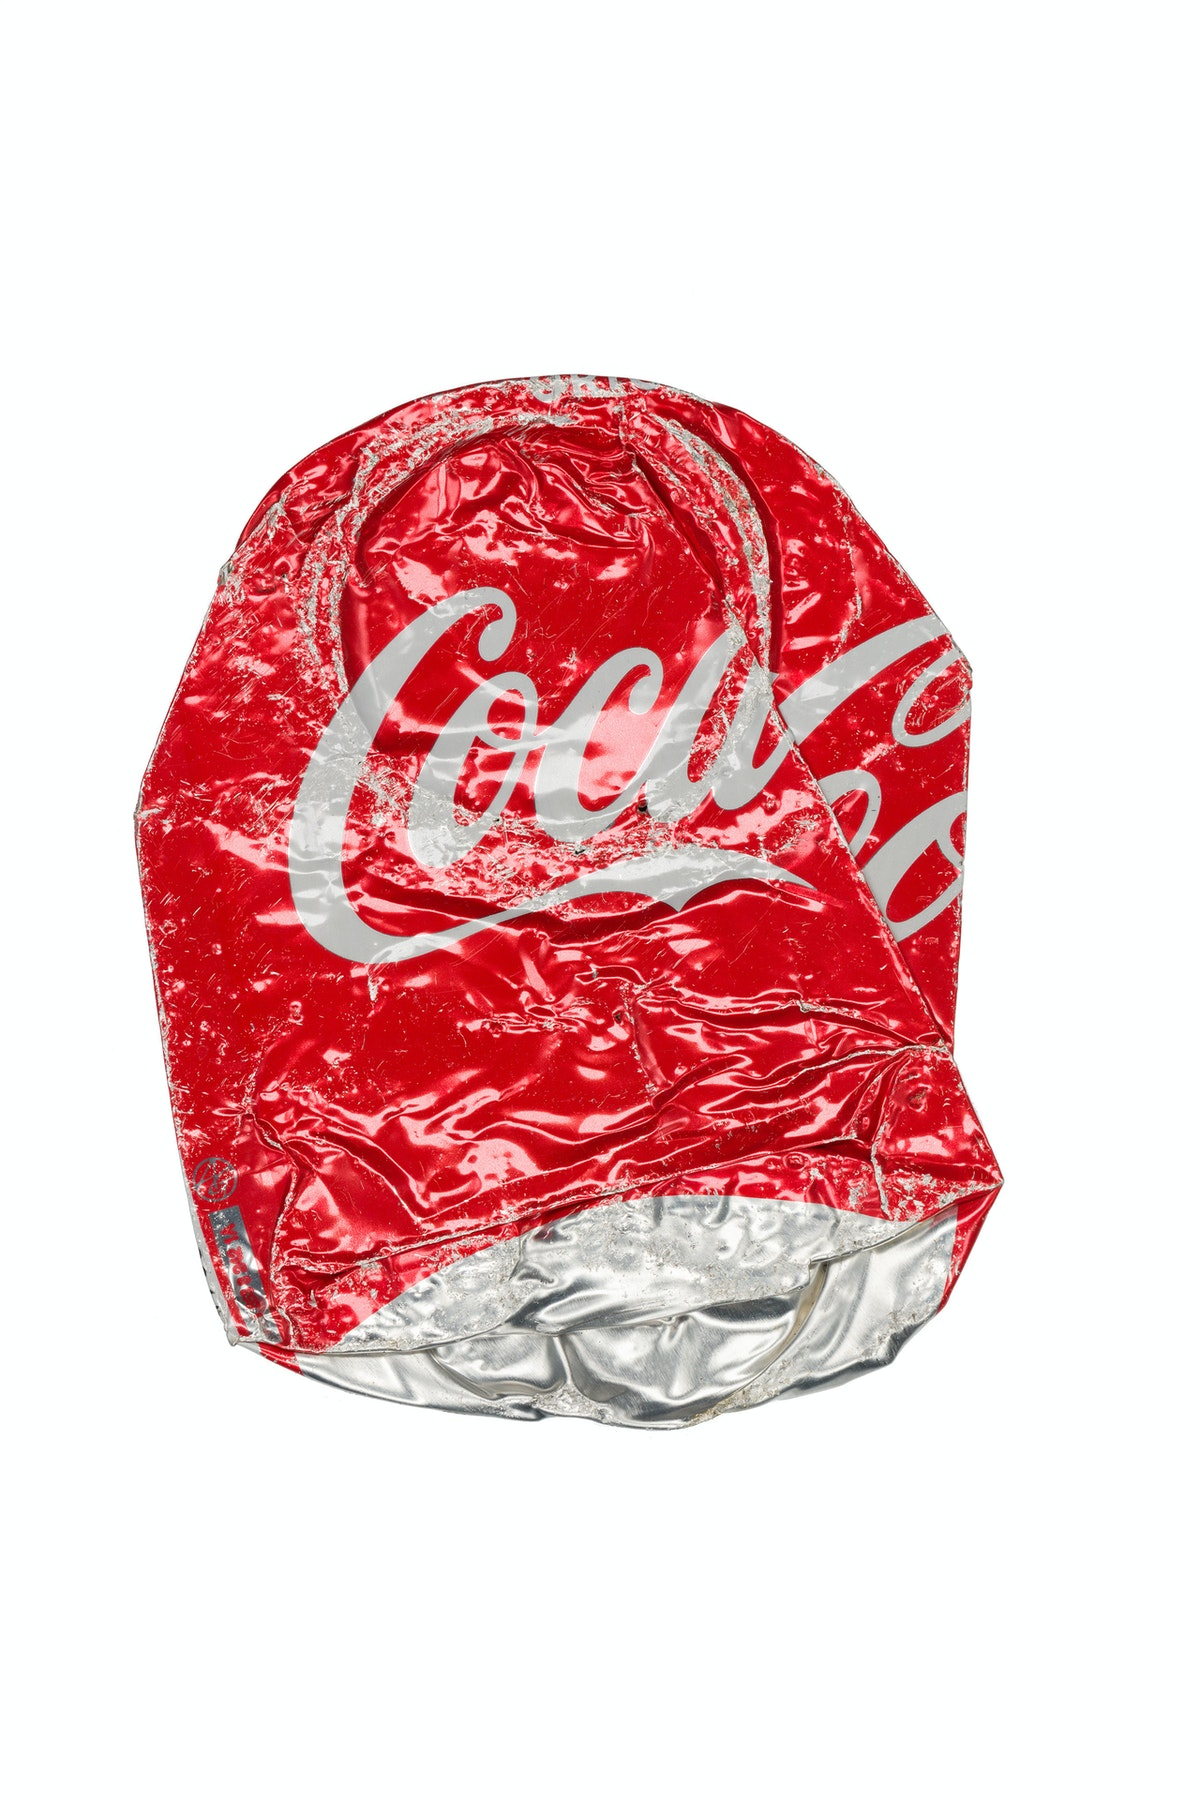 Case of Coke by Charles Cohen